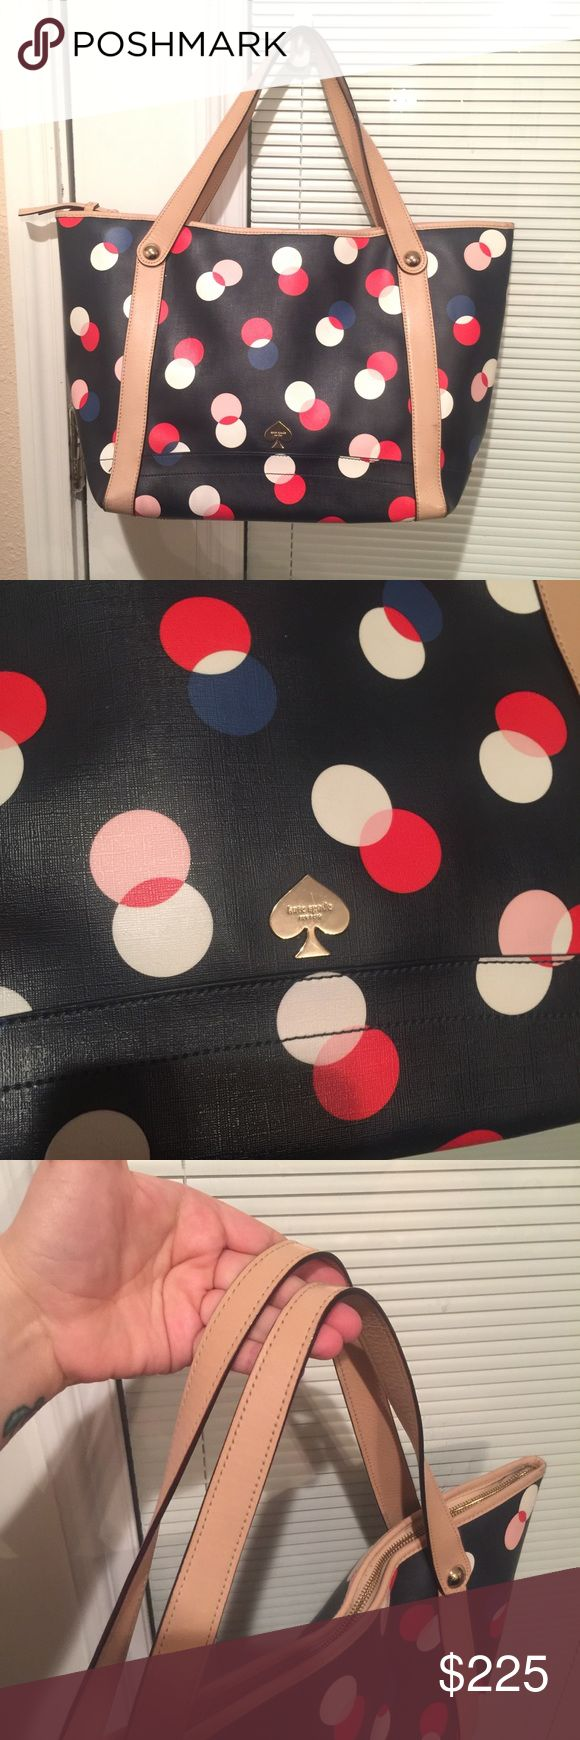 Super Cute Kate Spade Polka Dot Tote Bag Great condition, the only wear on this bag is the wear on the bottom corners. Can be seen in picture of bottom of bag. Authentic. Great condition aside from the minor bottom wear. Beautiful easy to clean coated exterior. Leather handles are in beautiful condition, trade value higher. Will consider reasonable offers. kate spade Bags Totes